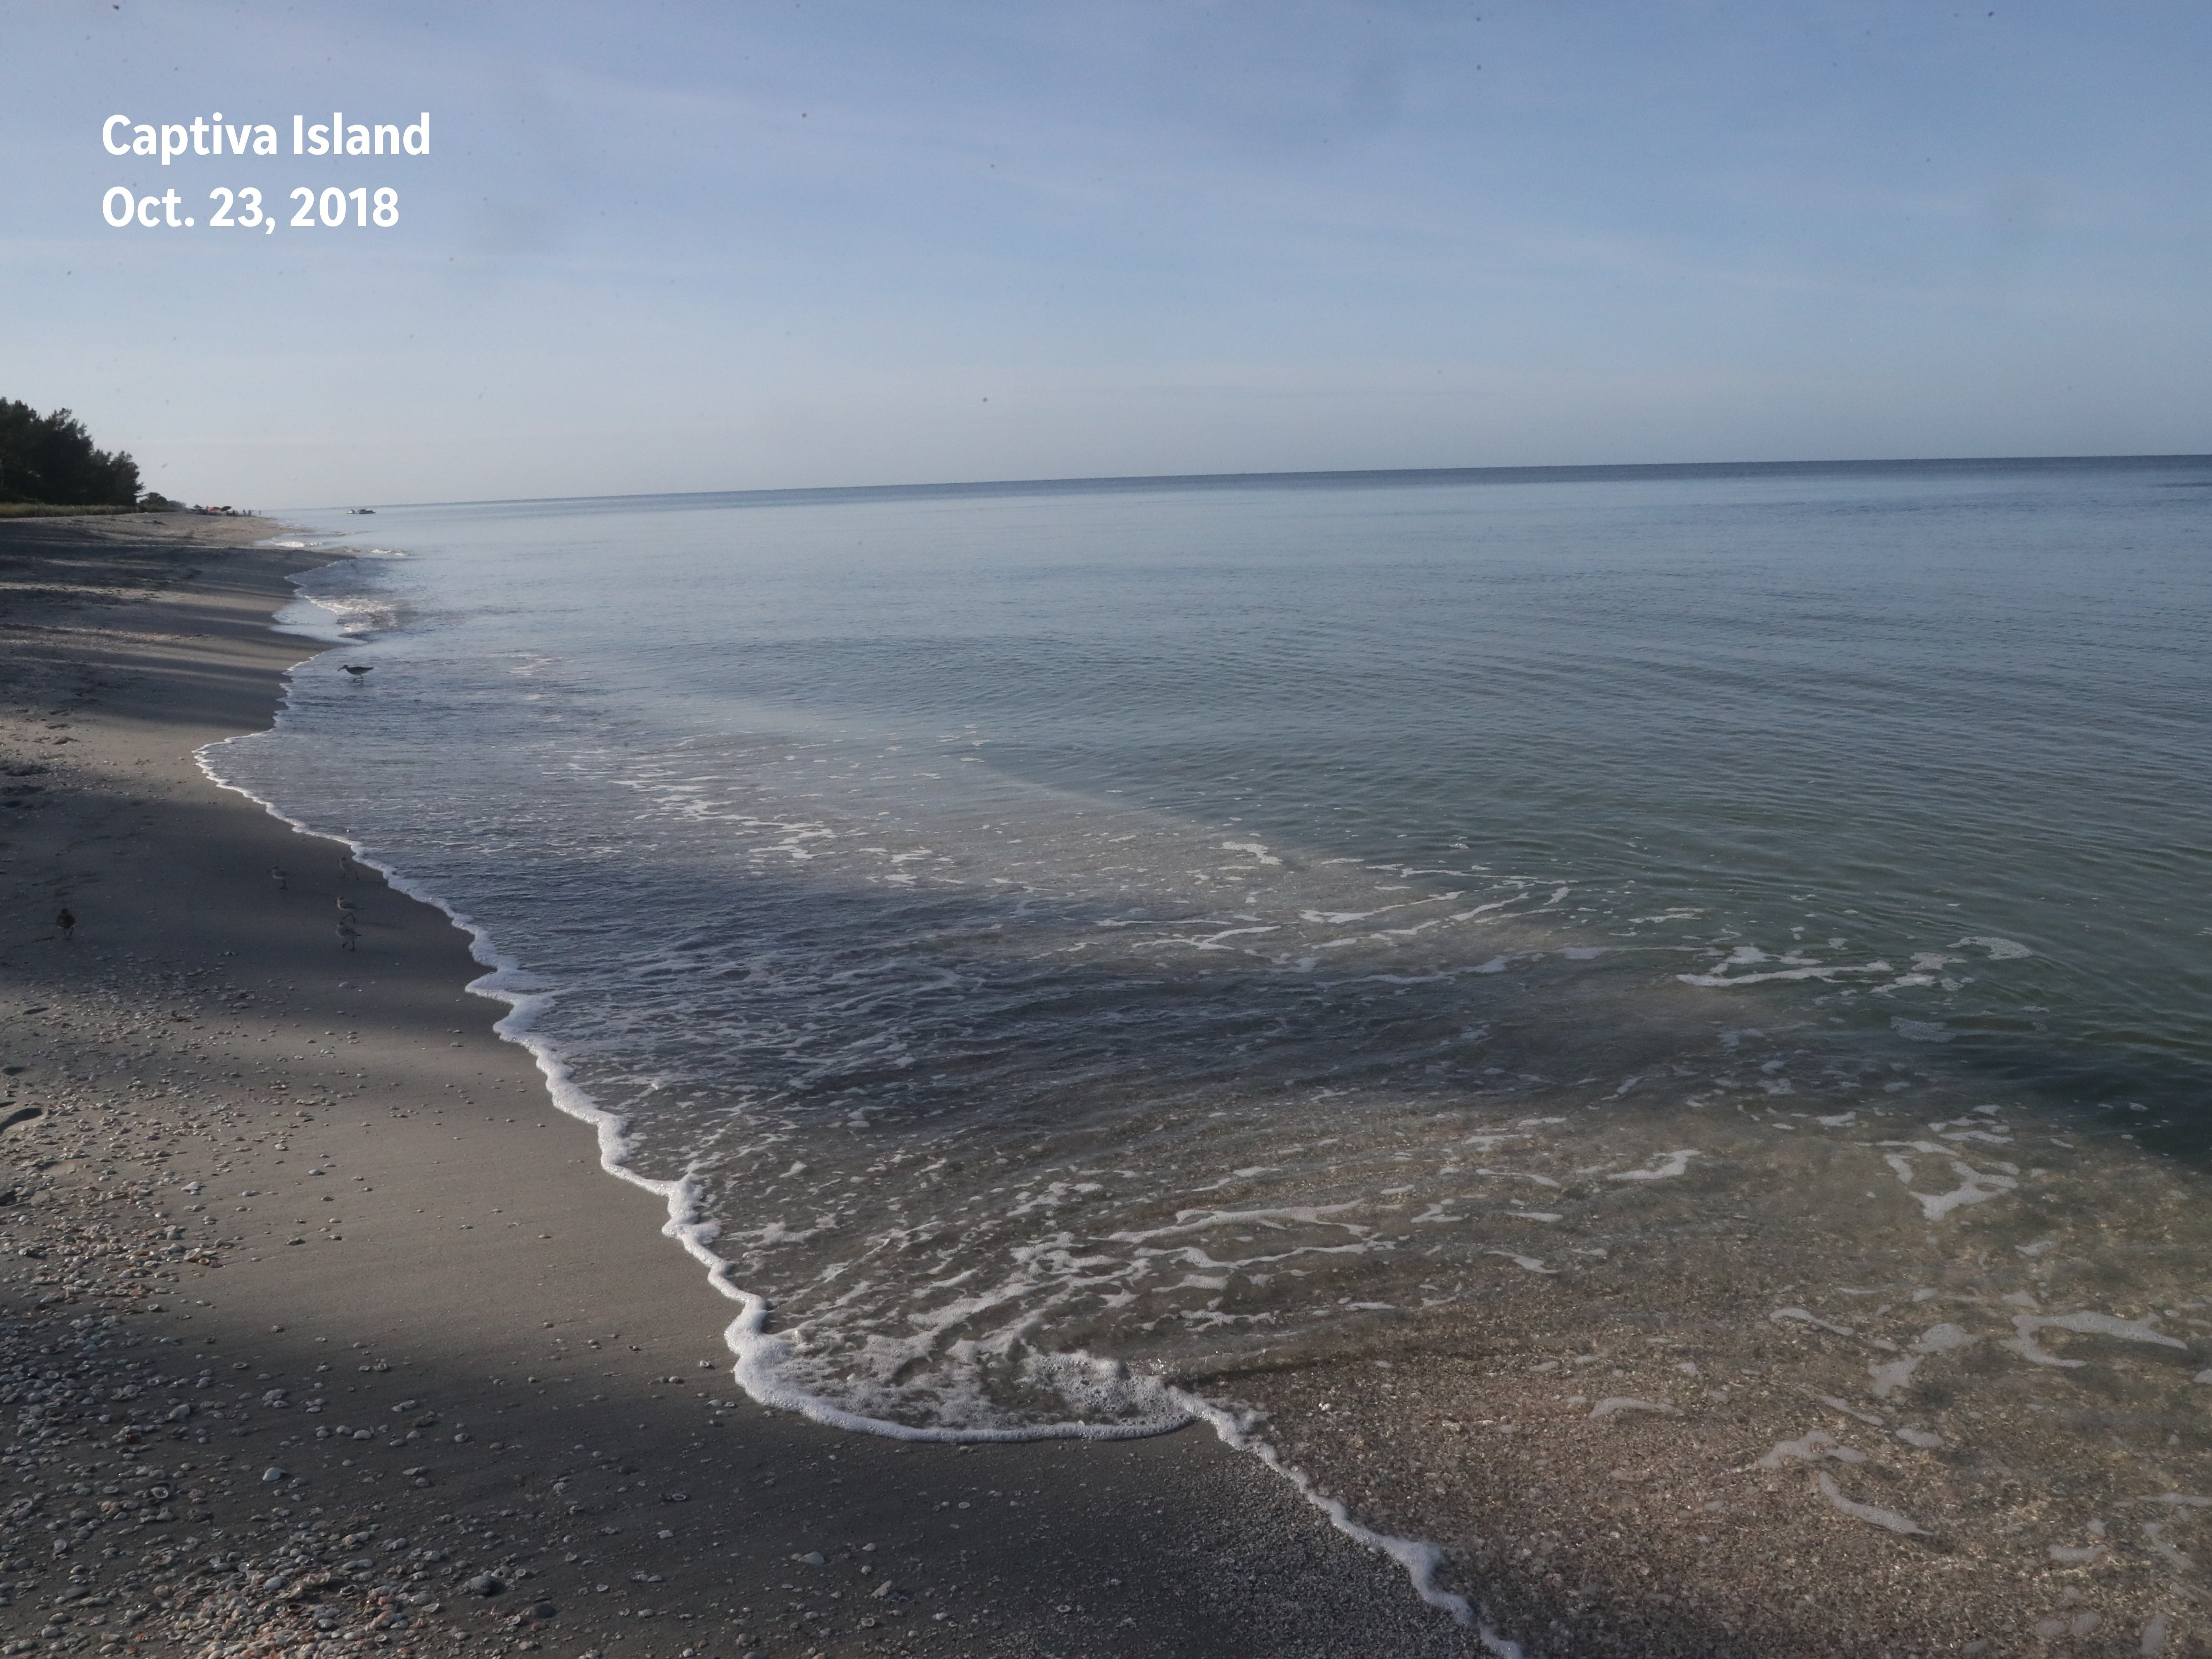 After: An image from the same beach on Captiva Island — free of red tide — was recaptured on Oct. 23, 2018.